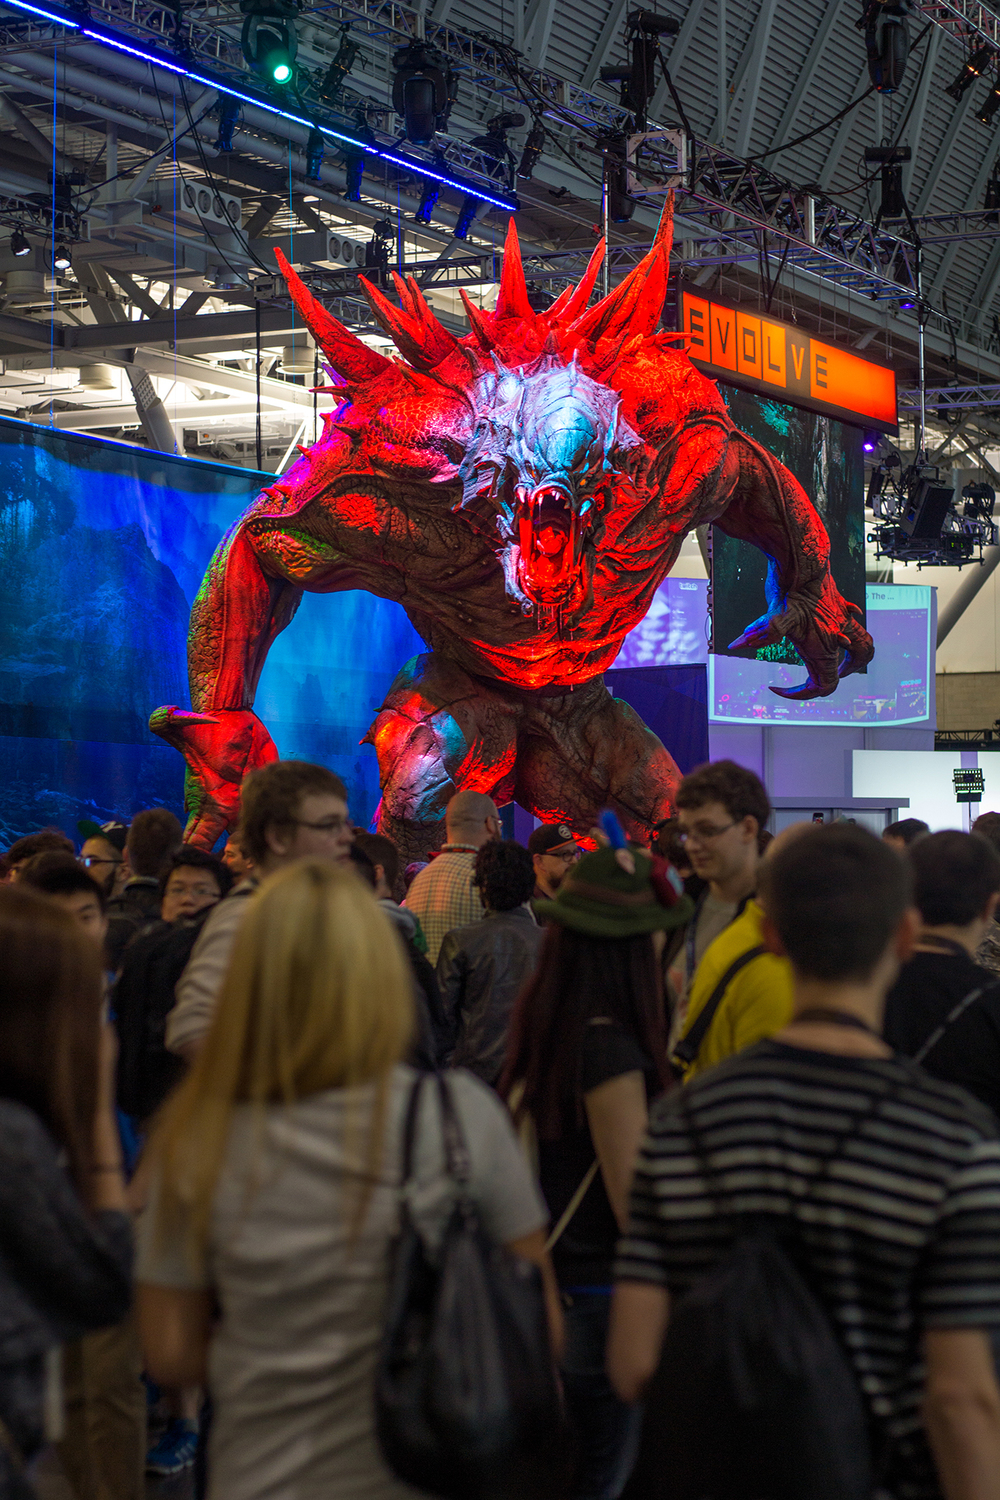 PAX East: 2K's newly announced Evolve shows off it's playable villain silently screaming out as it towers over the crowds.